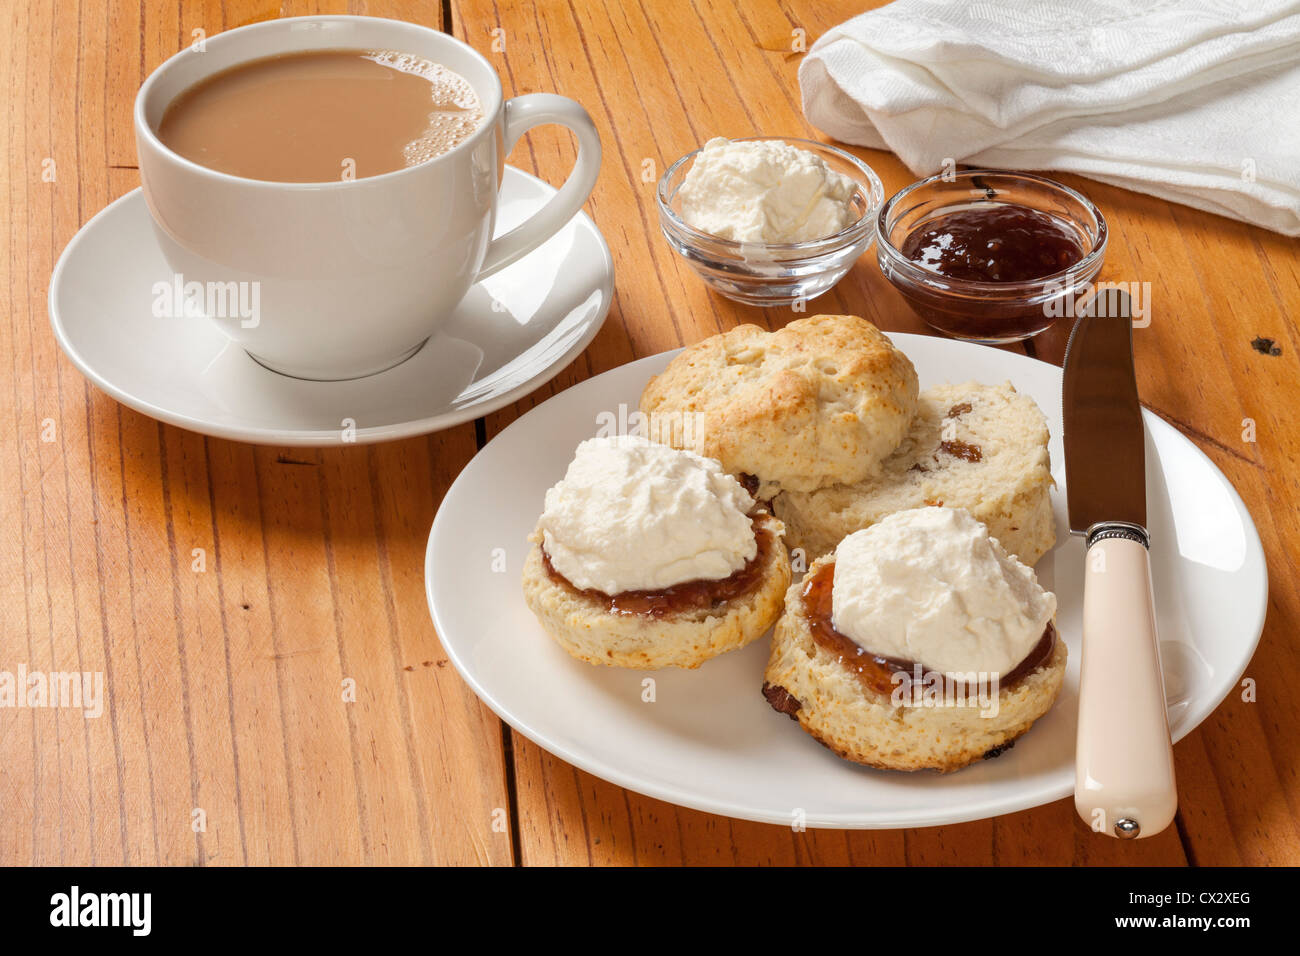 Devon cream tea, scones, jam, cream and a cup of tea, on an old pine table. - Stock Image